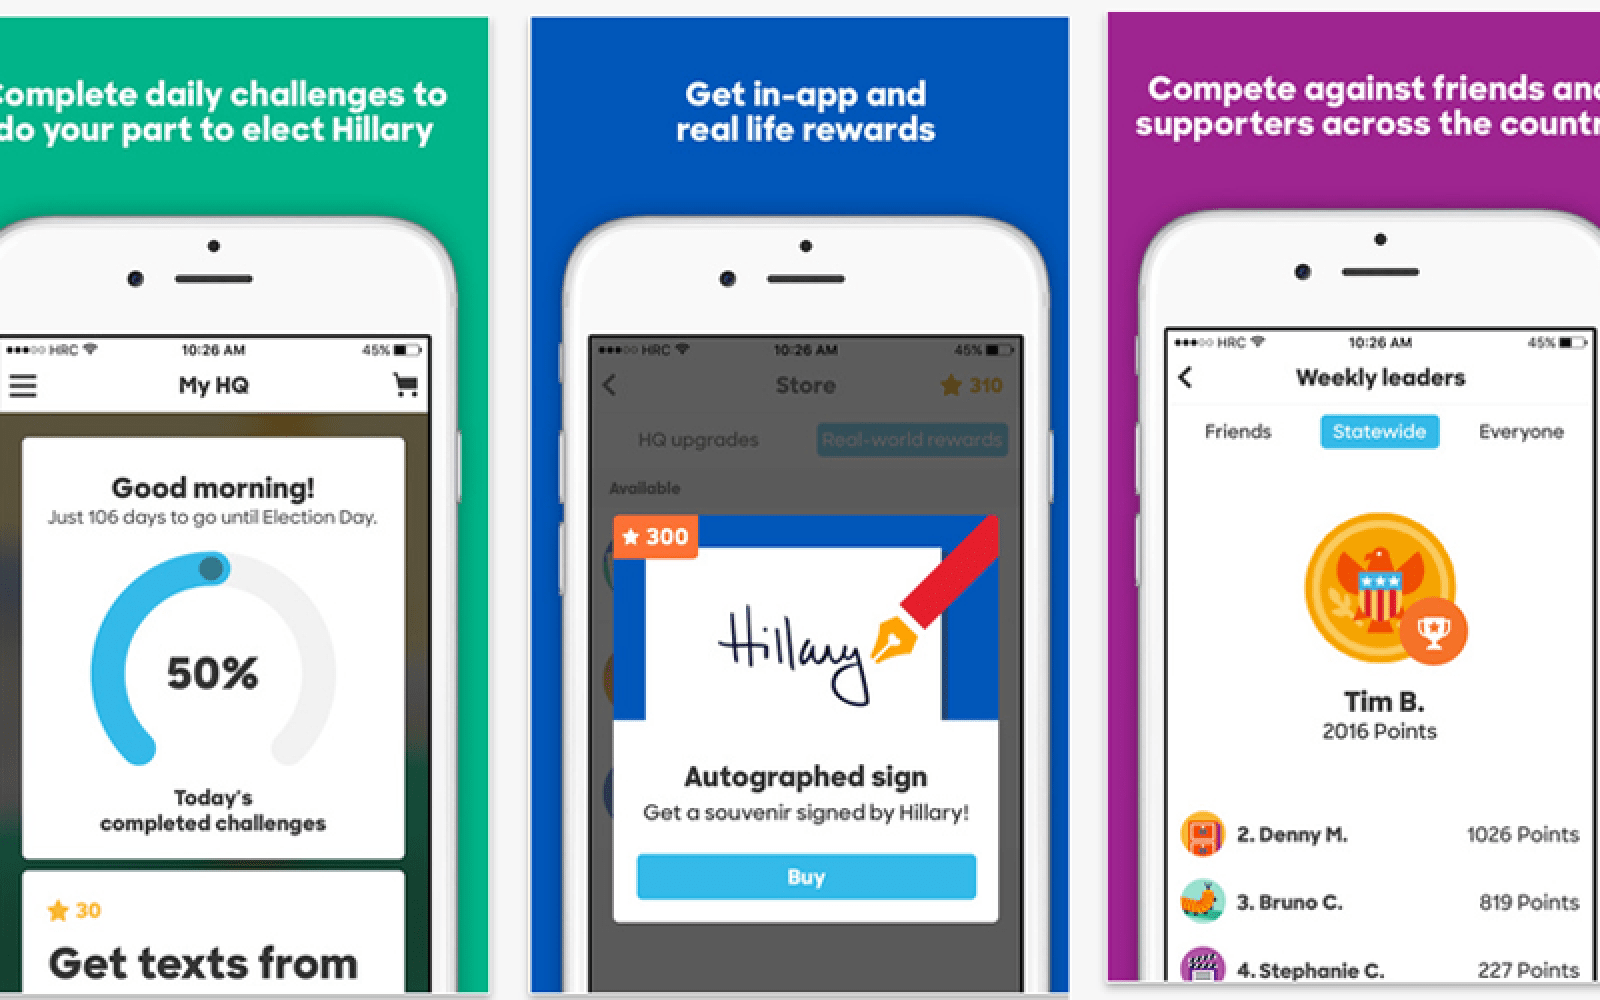 Hillary 2016 app sees gamification of political activism for iPhone-owning Democrats